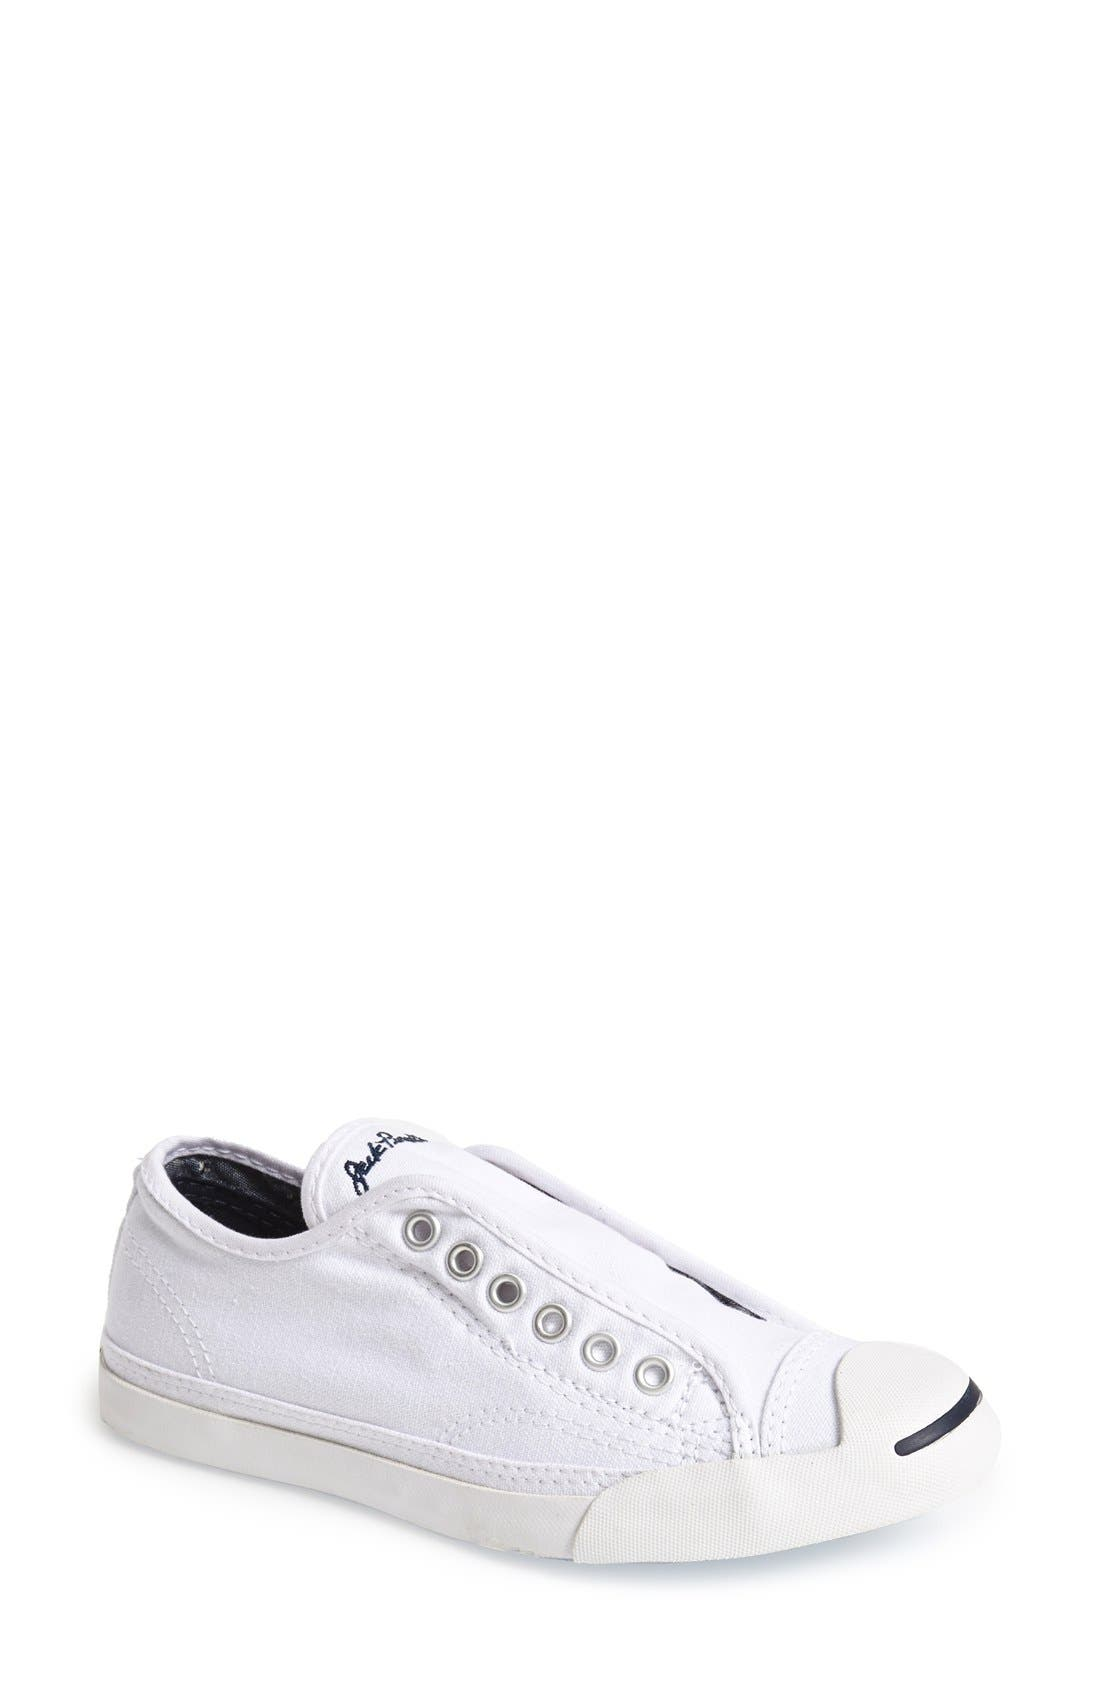 Alternate Image 1 Selected - Converse 'Jack Purcell - LP' Low Top Sneaker (Women)